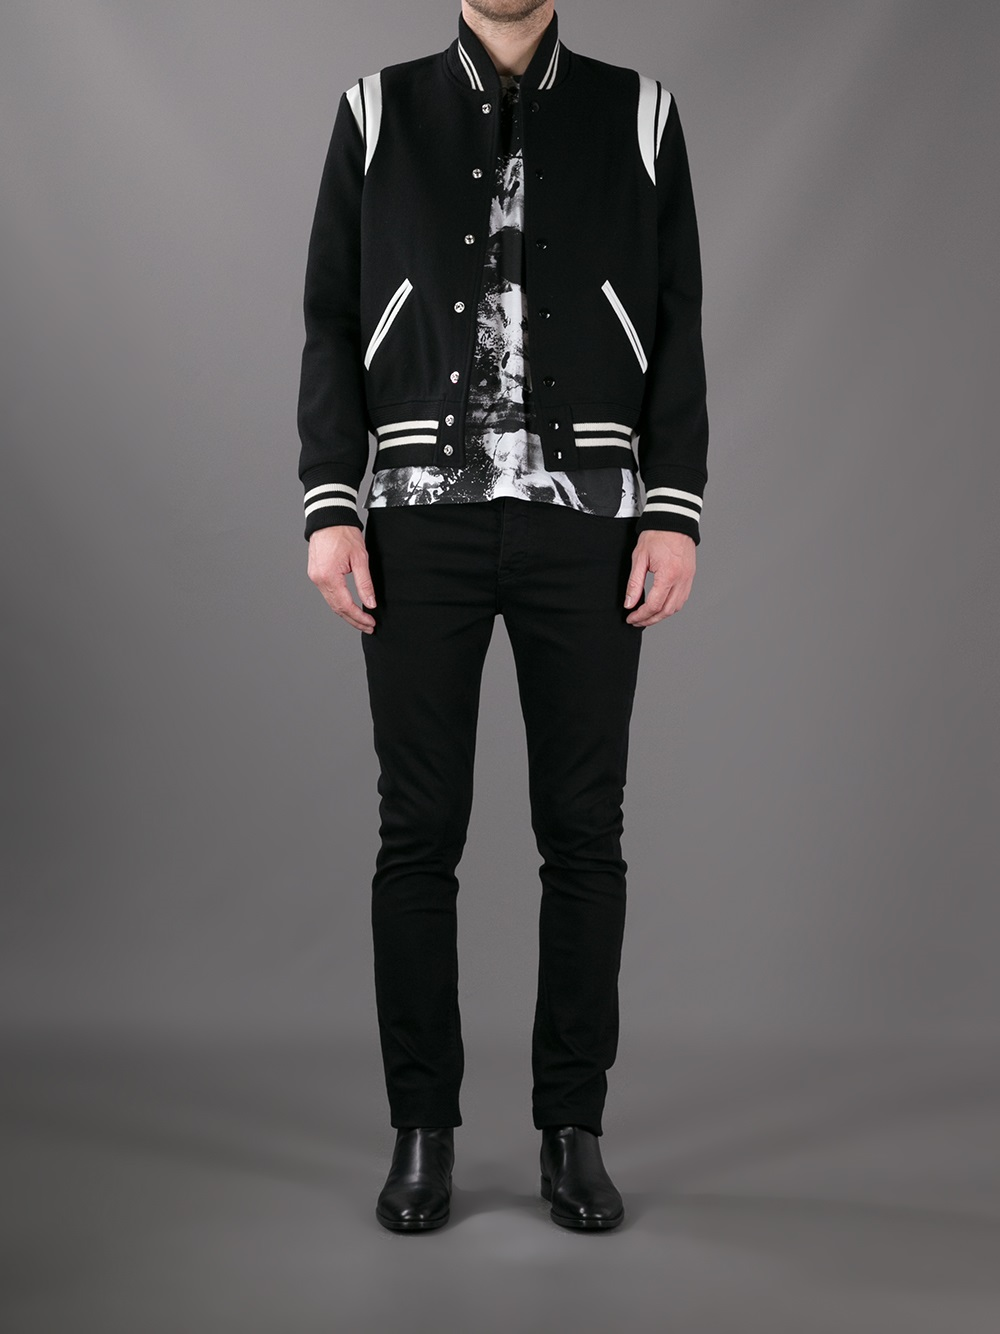 Saint Laurent Varsity Jacket In Black For Men Lyst